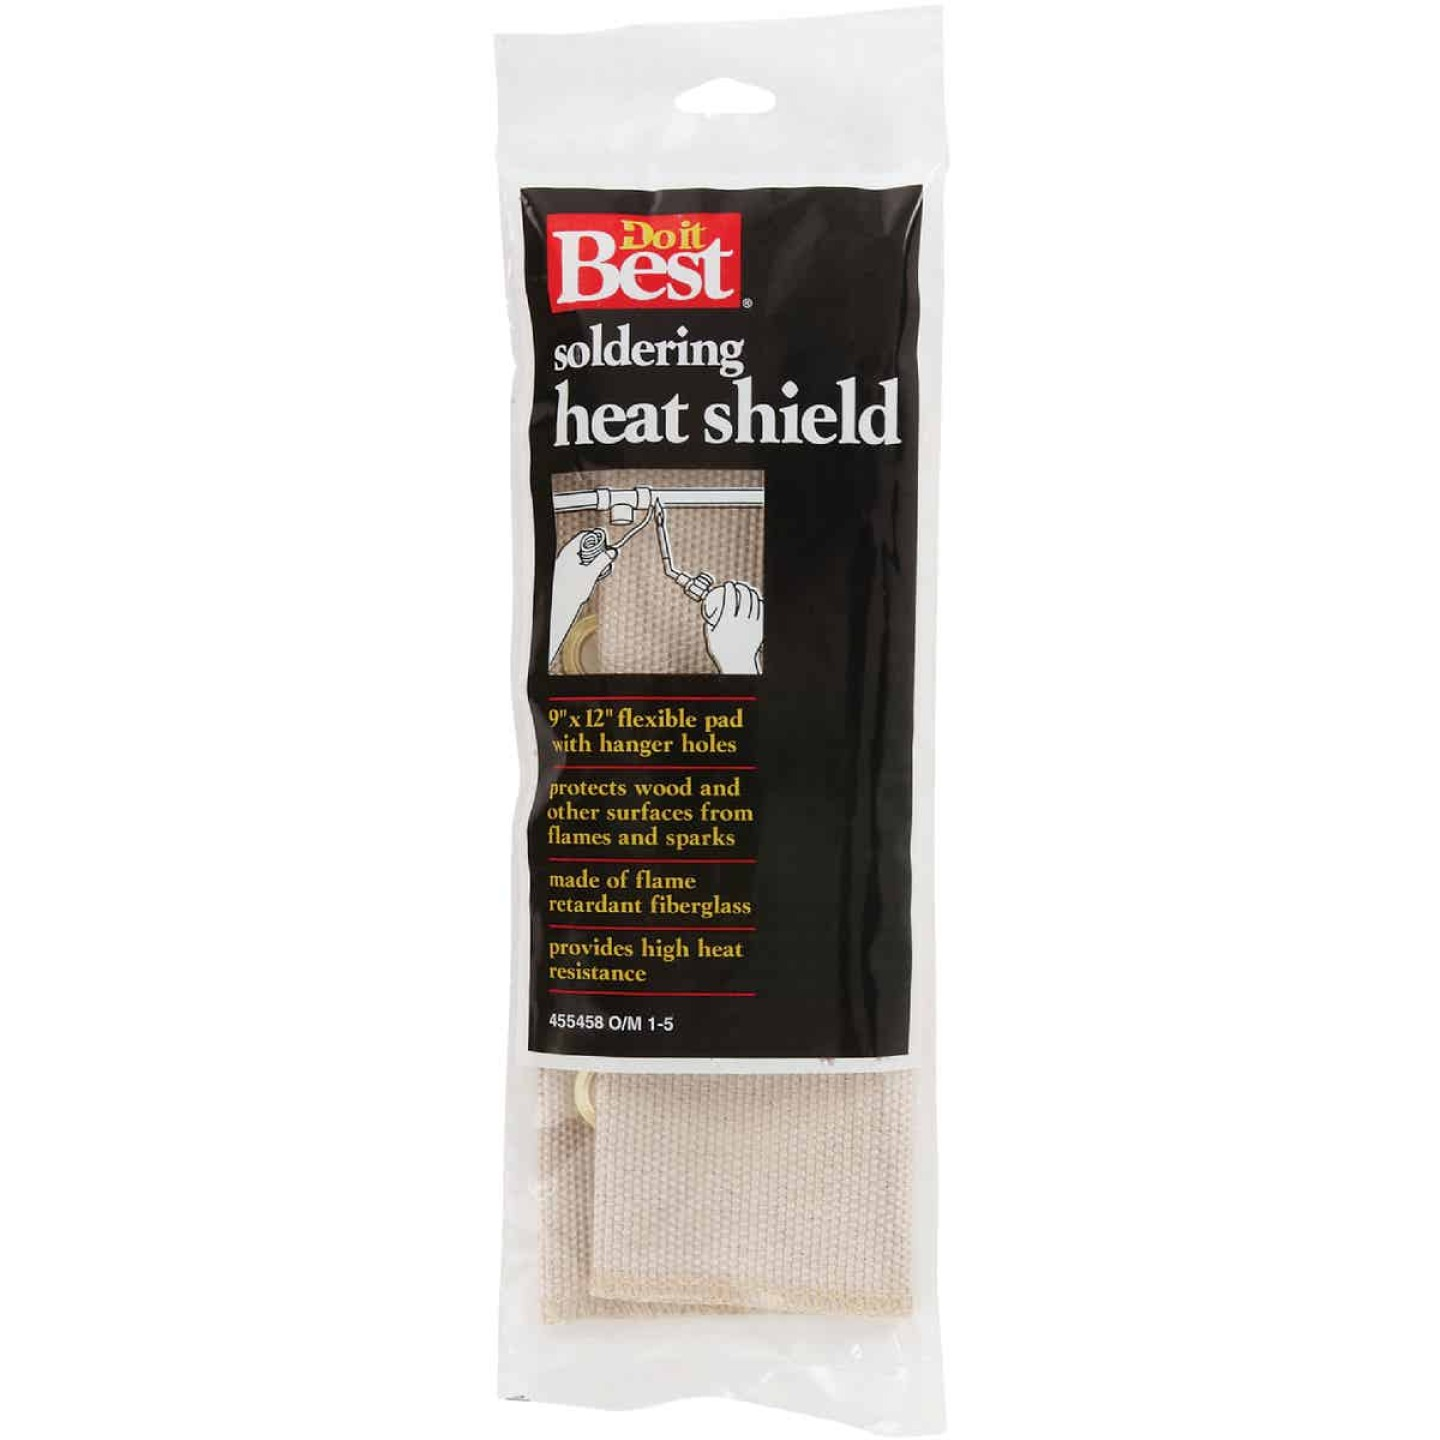 Do it Best 12 In. x 9 In. Fiberglass Soldering Heat Shield Image 1